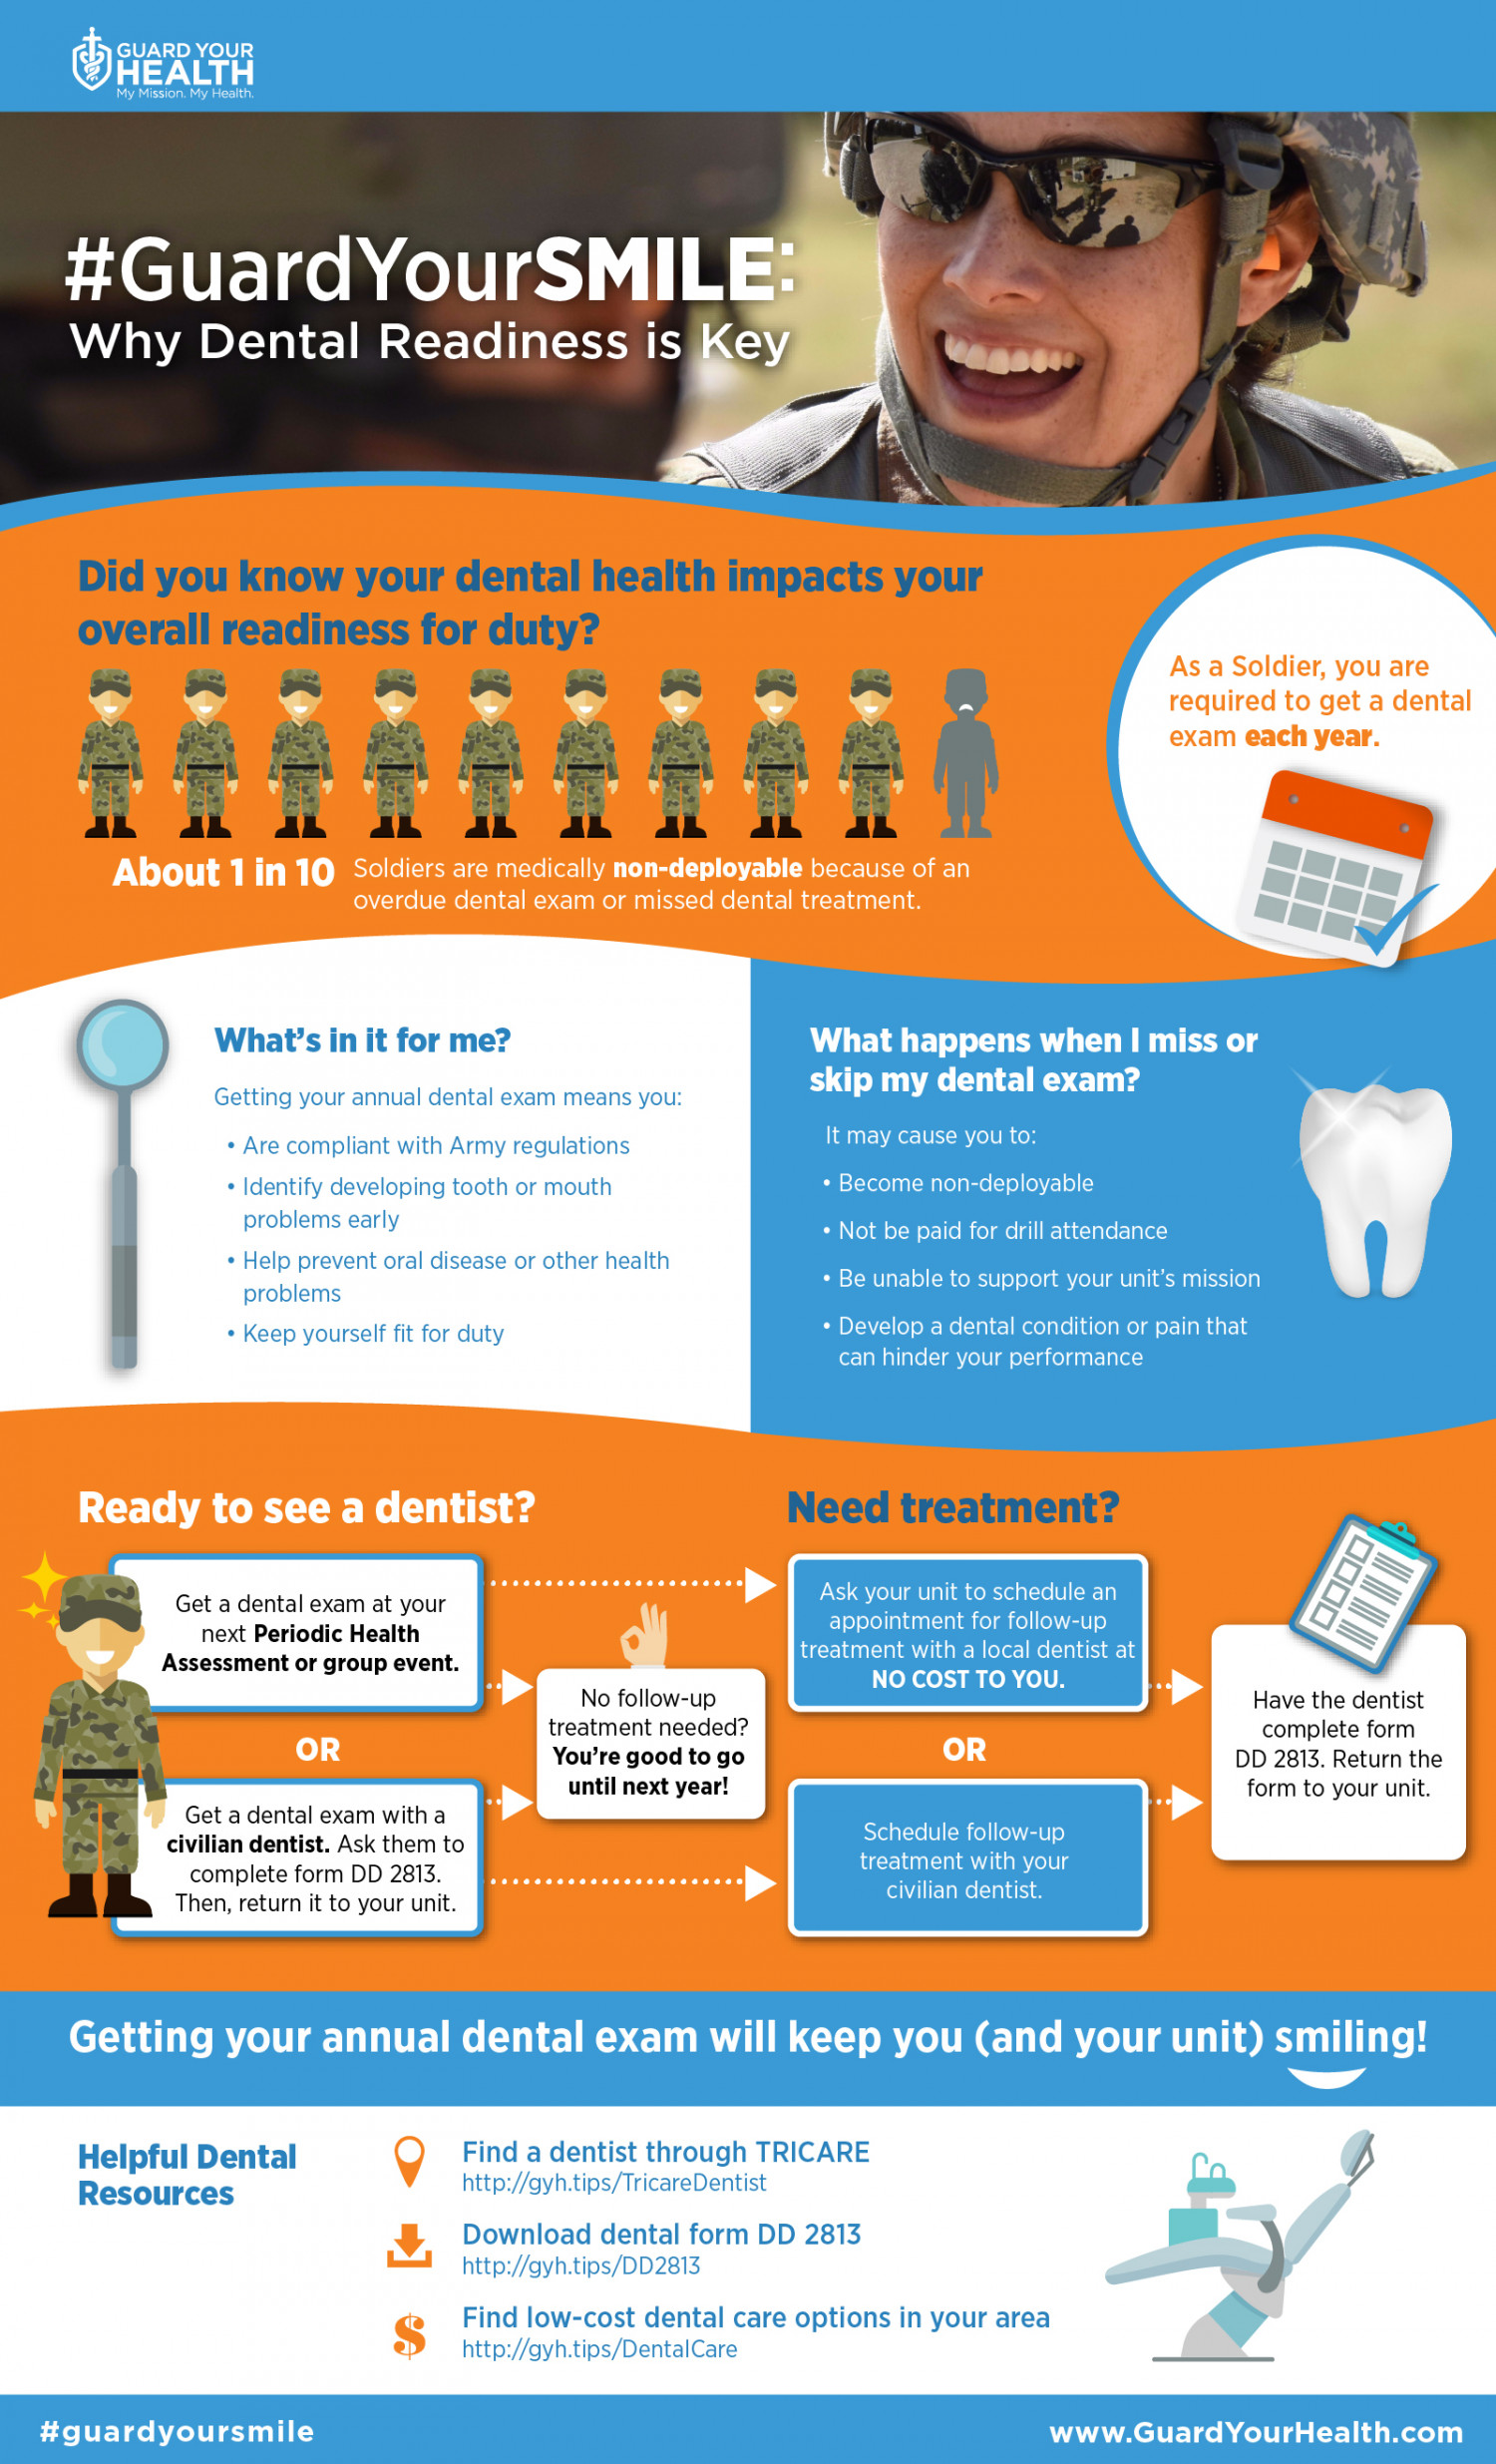 Guard Your Smile: Why Dental Readiness is the Key Infographic